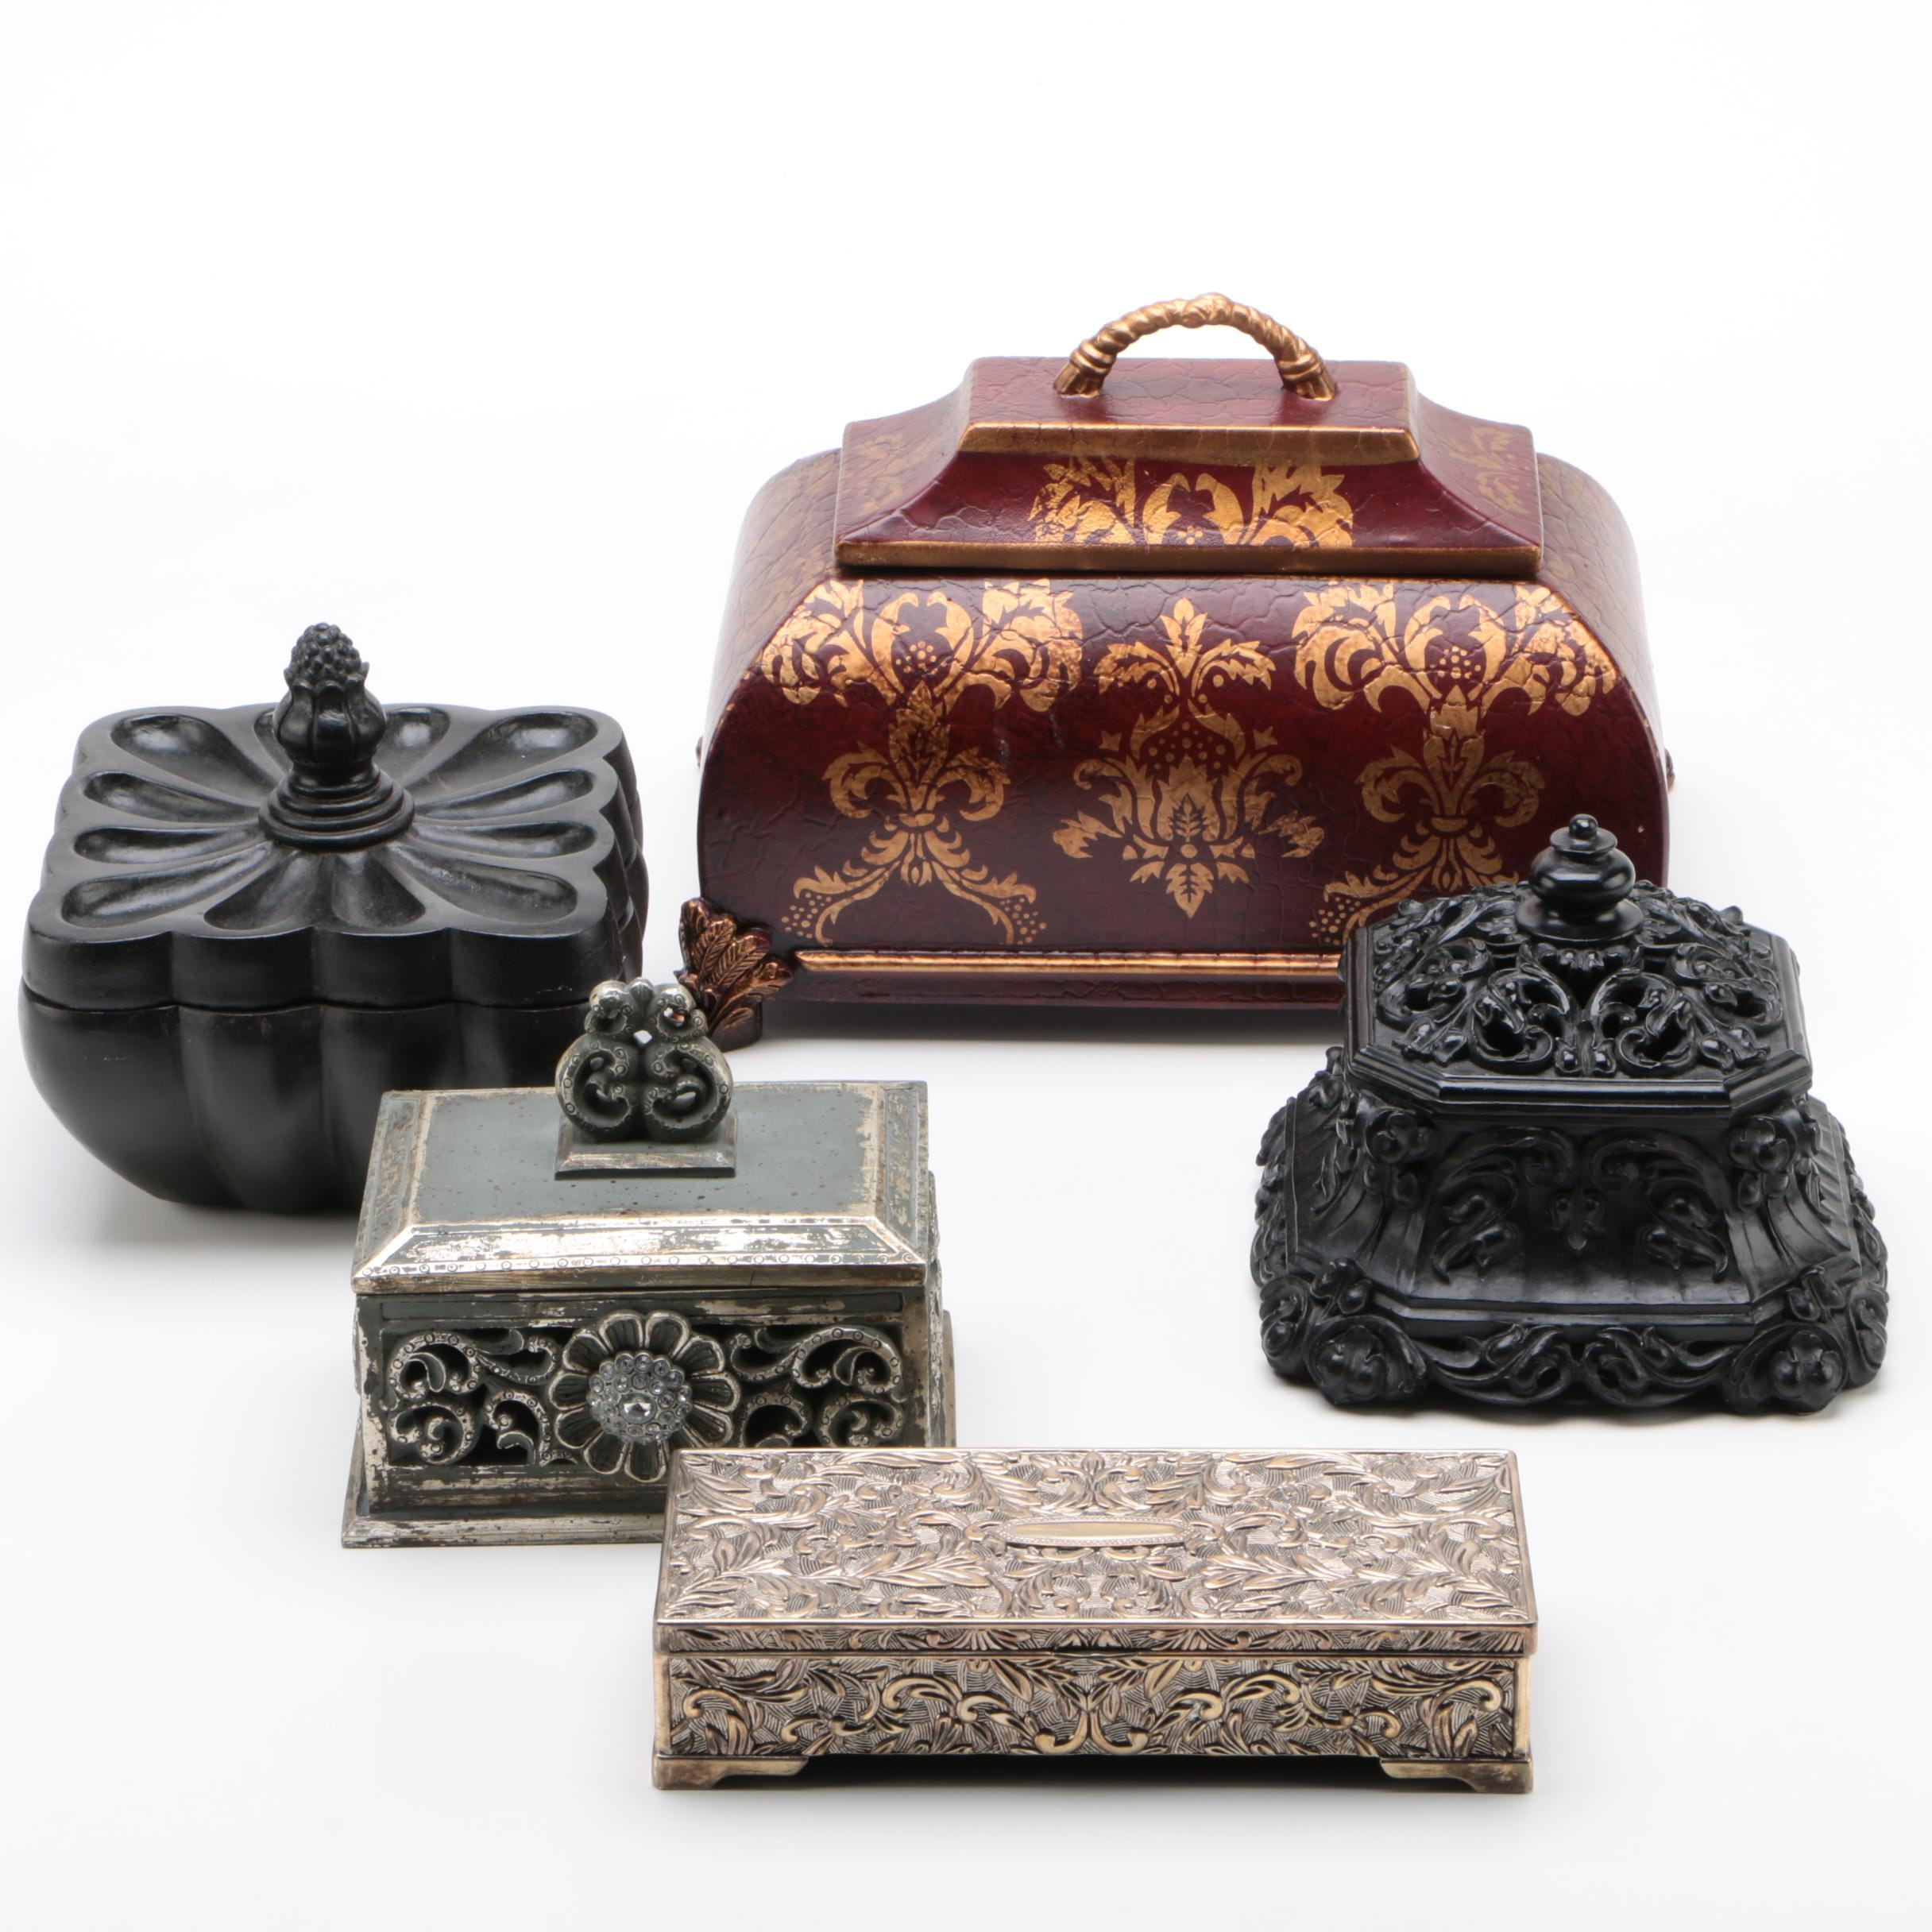 Godinger Jewelry Box and Other Decorative Boxes